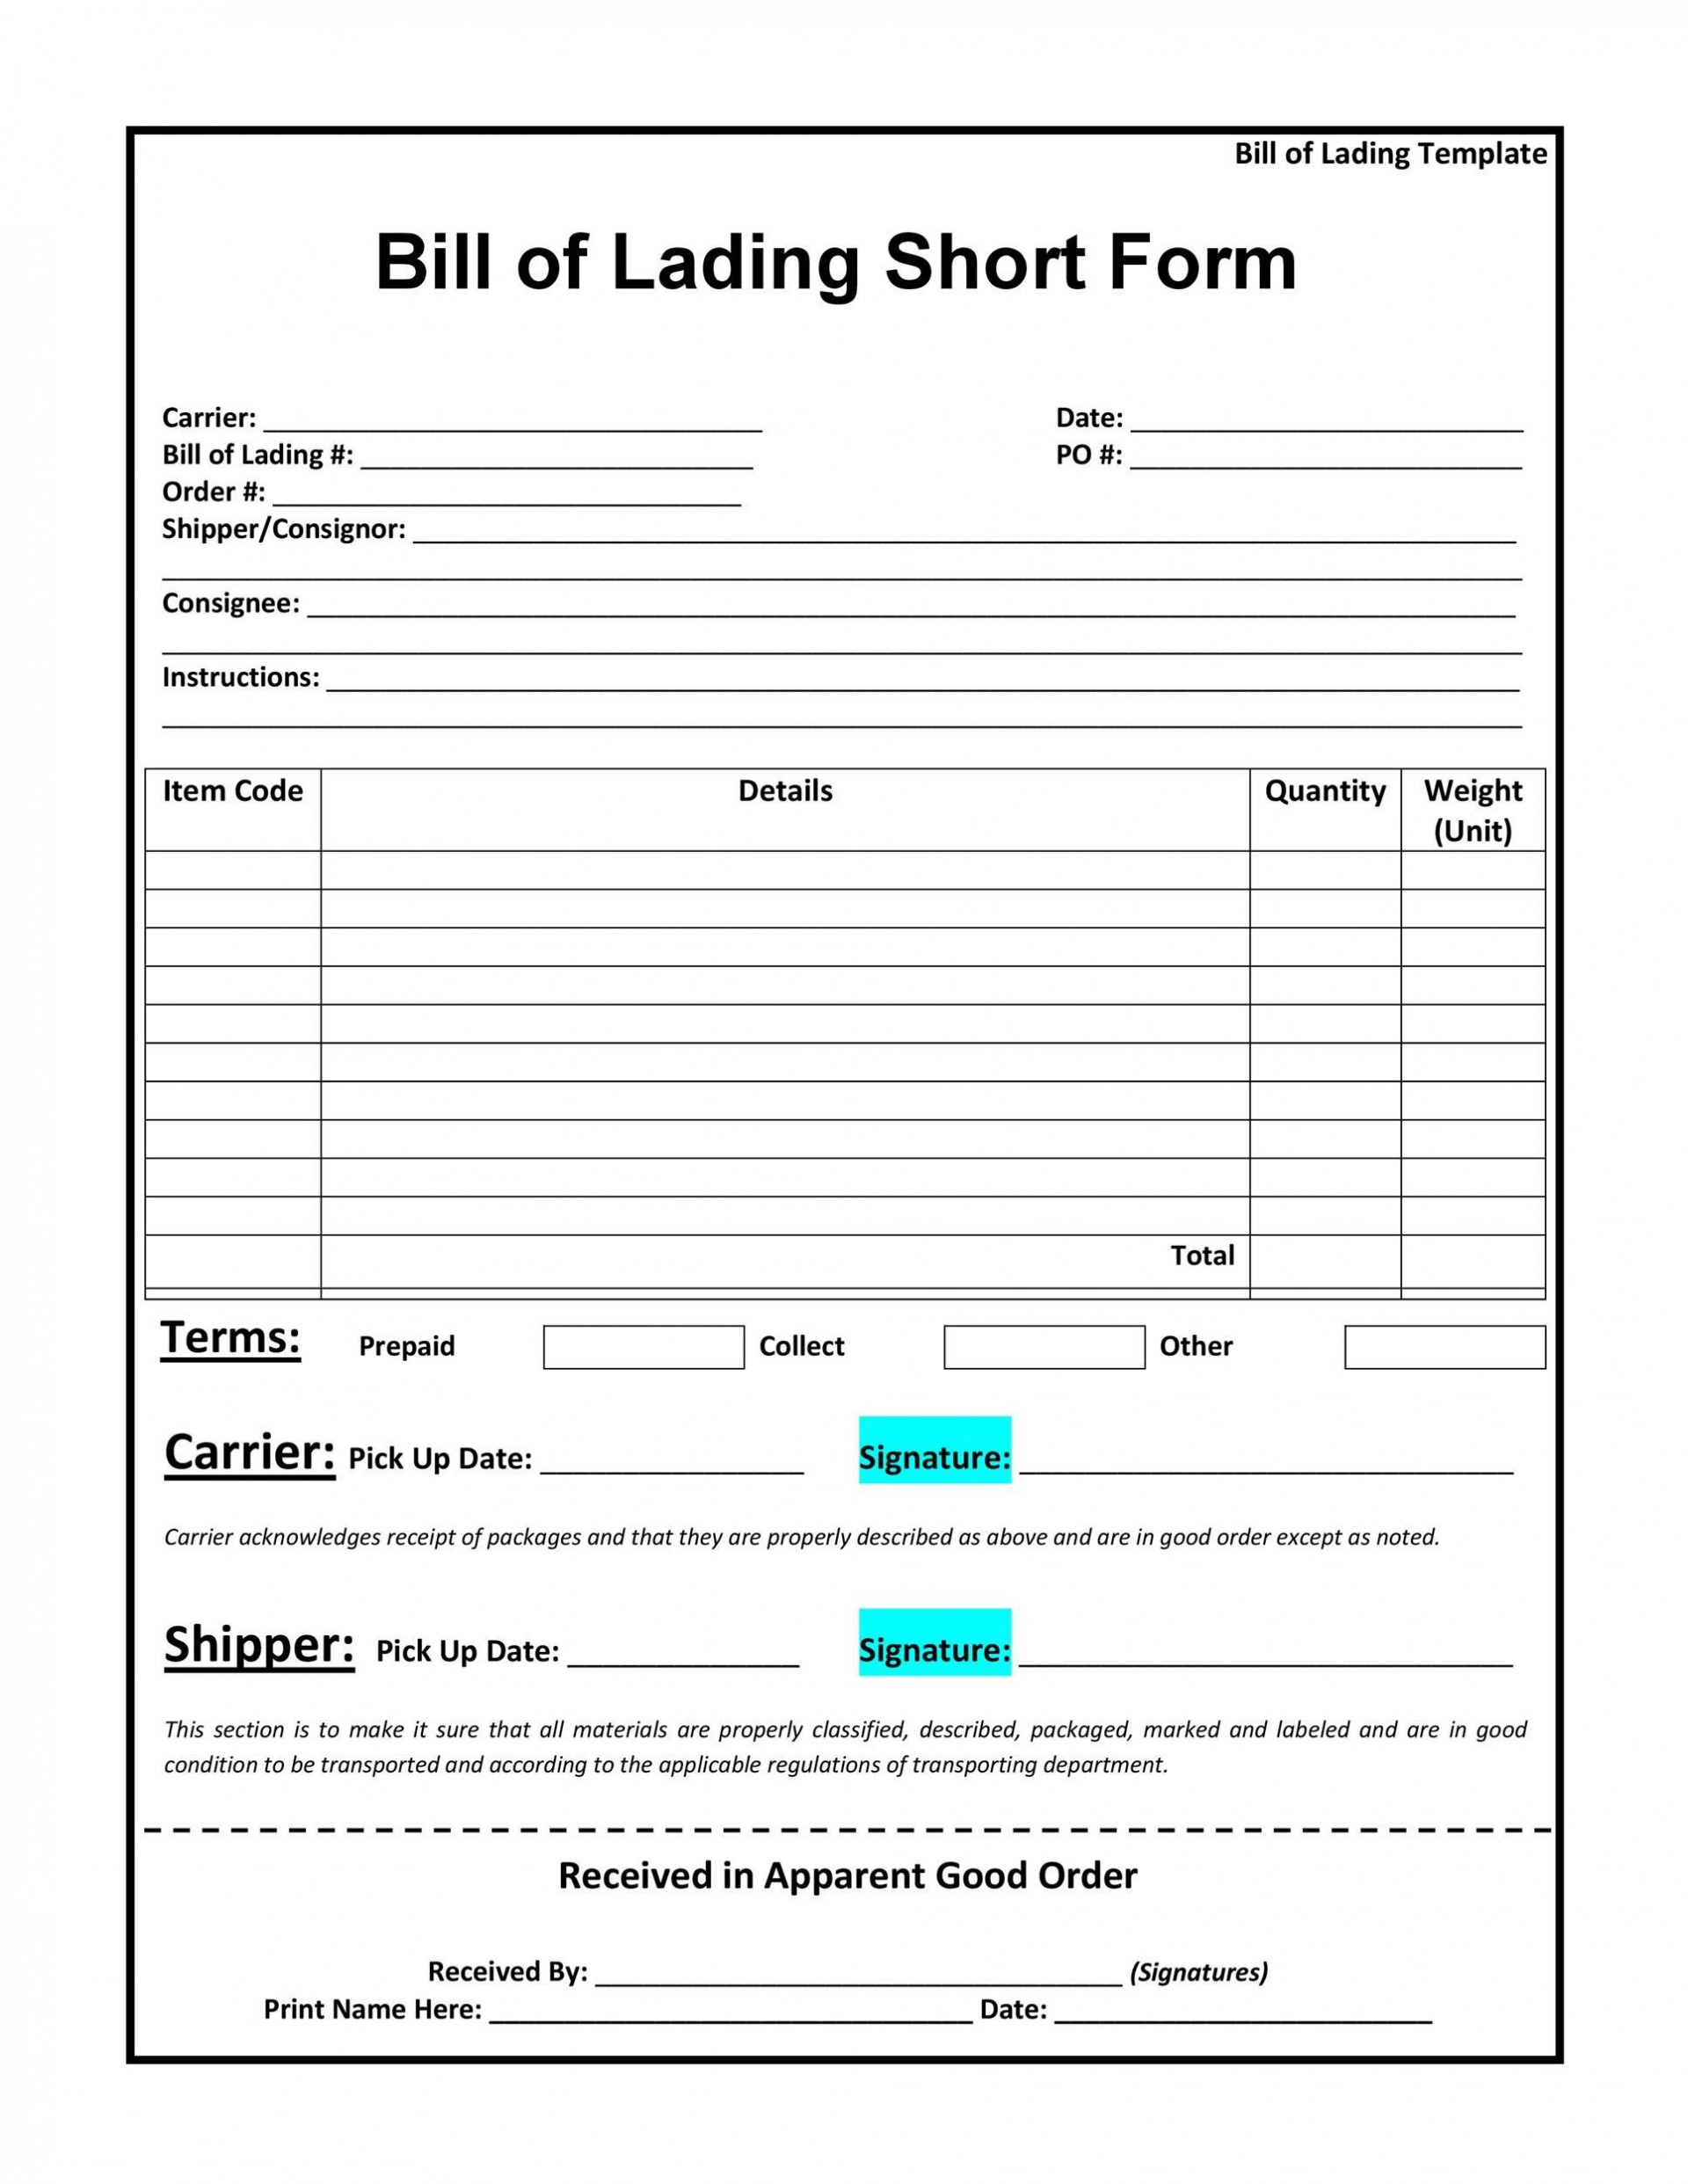 008 Archaicawful Straight Bill Of Lading Template Concept  Canada Word Free Printable1920